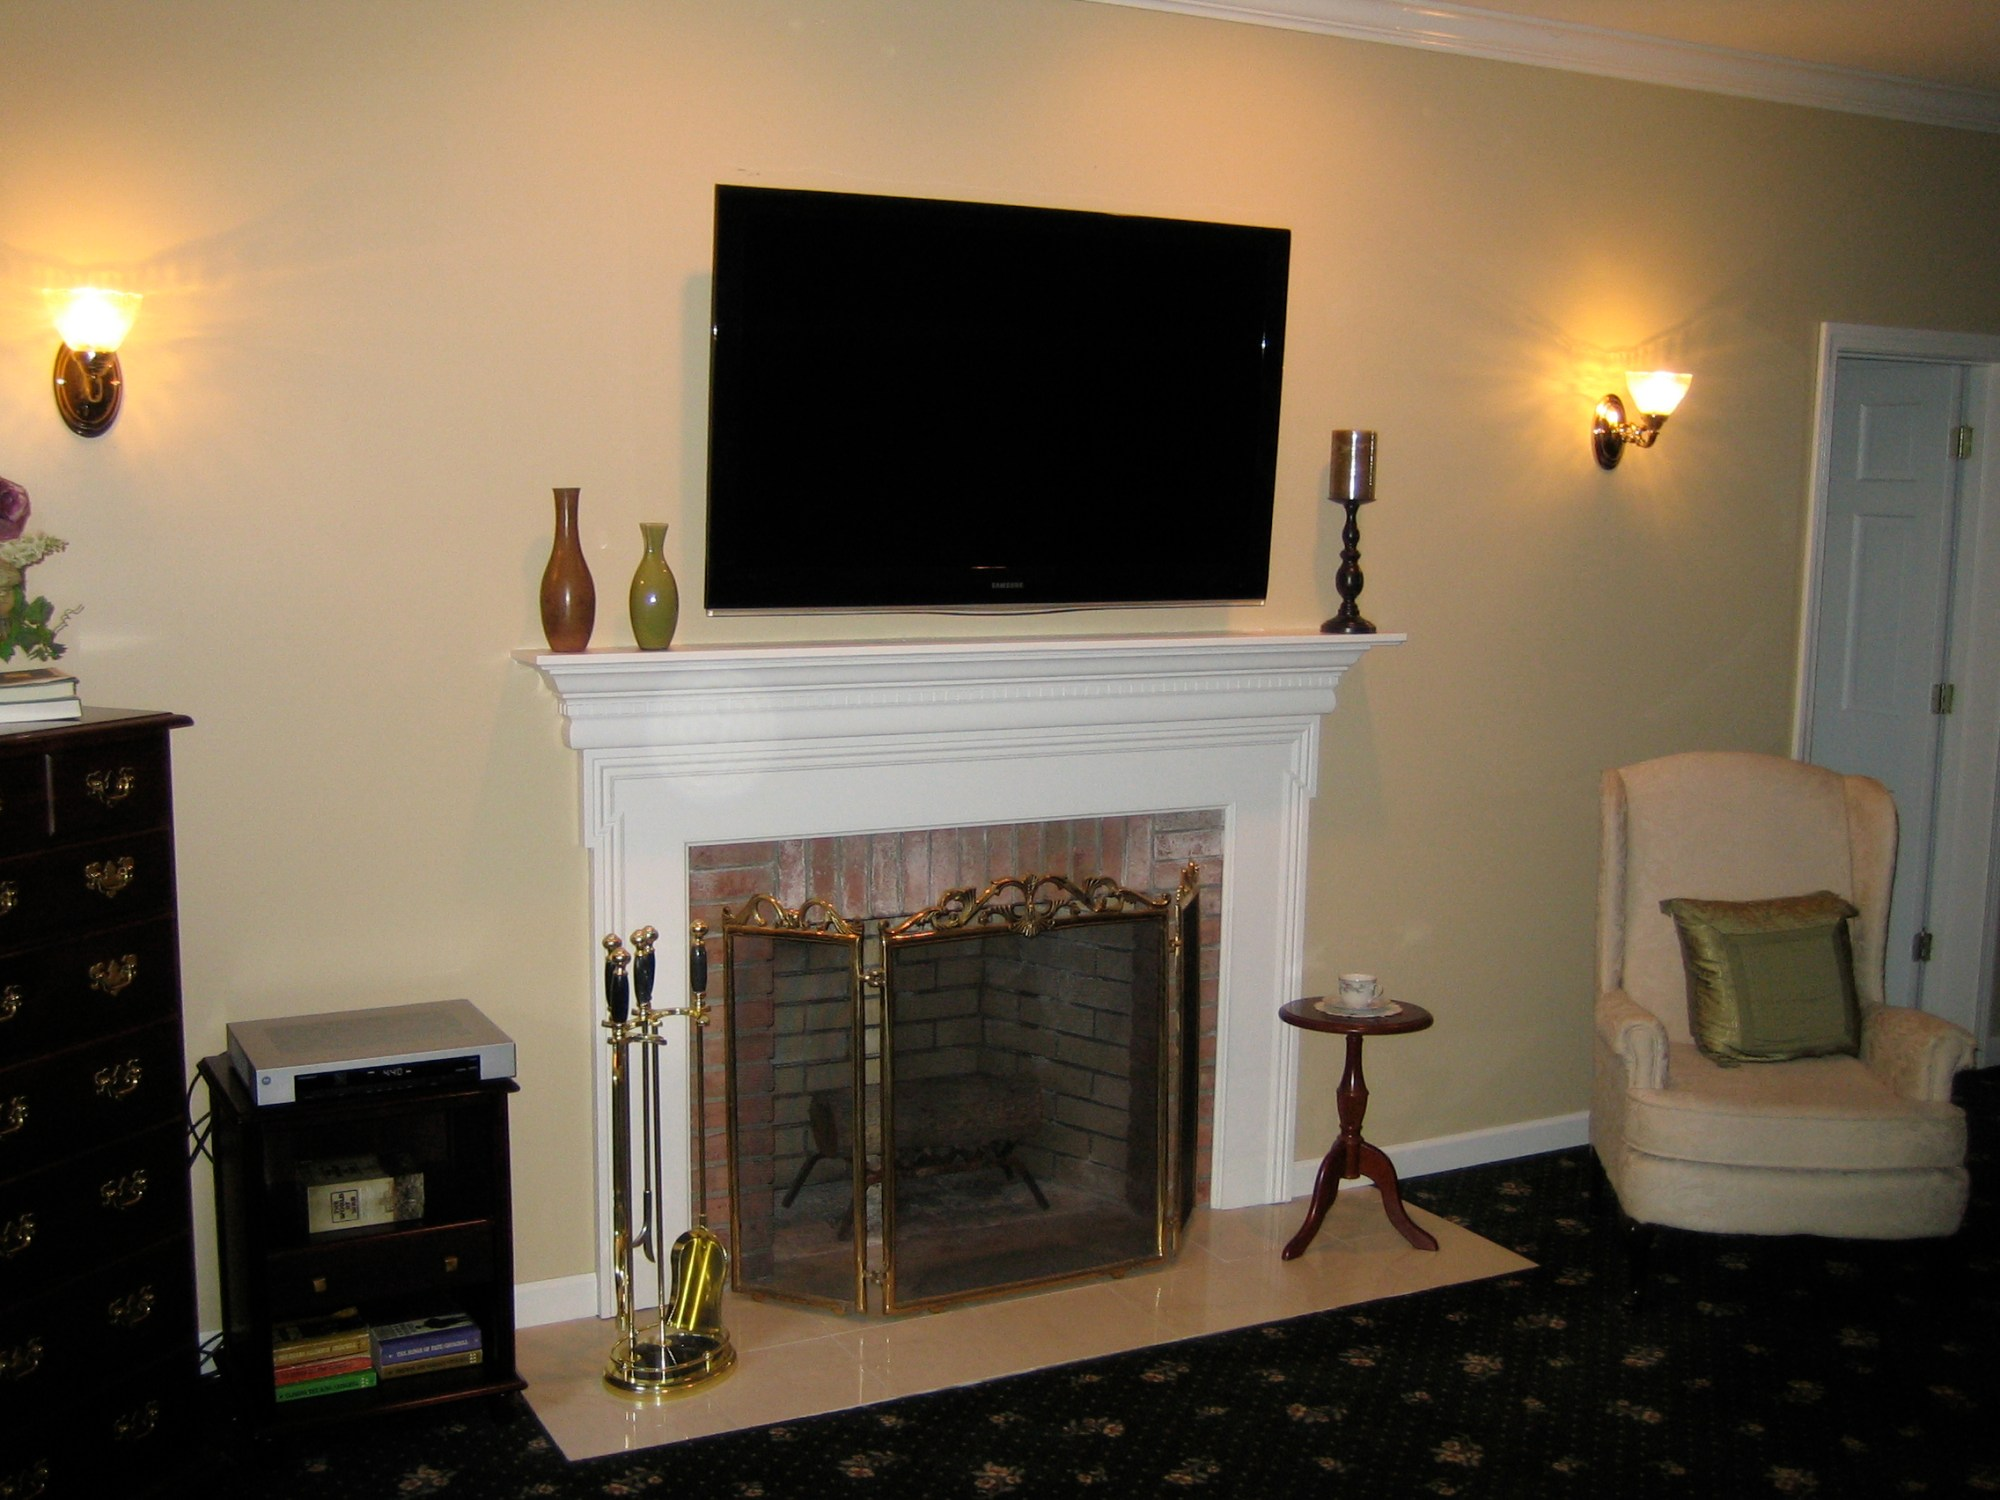 hight resolution of clinton ct tv install above fireplace in wall wire concealment